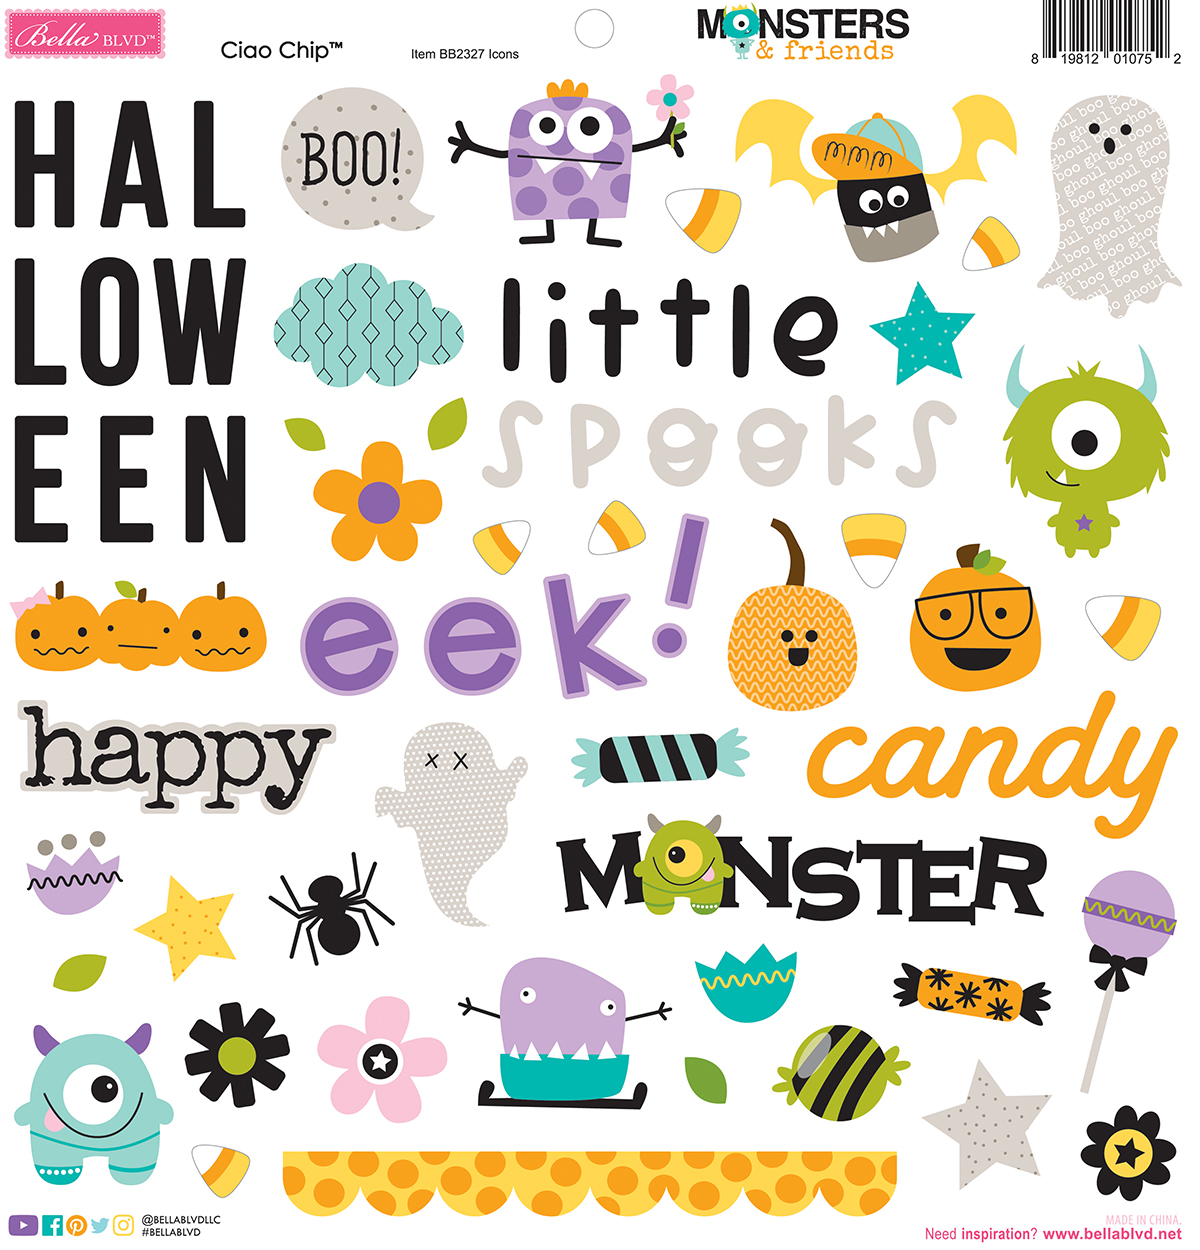 Chipboard Icons, Monsters & Friends Chipboard Icons (6 pc)